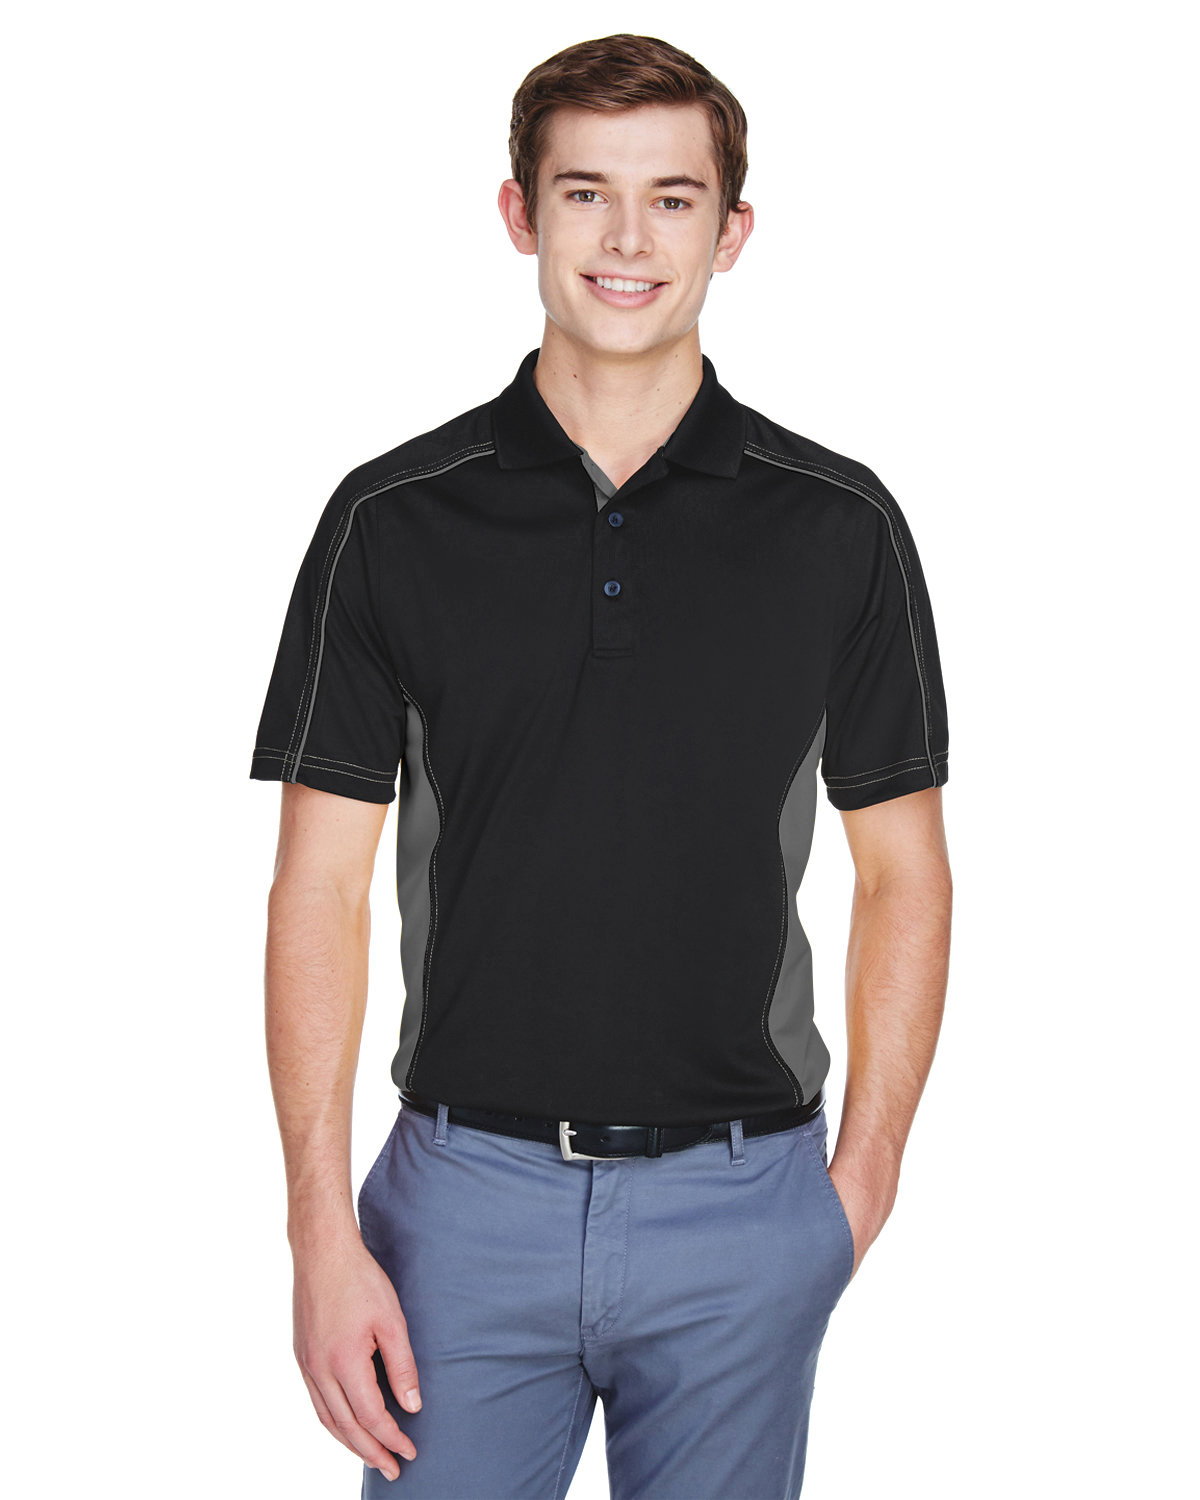 Extreme Men's Tall Eperformance™ Fuse Snag Protection Plus Colorblock Polo BLACK/ CARBON